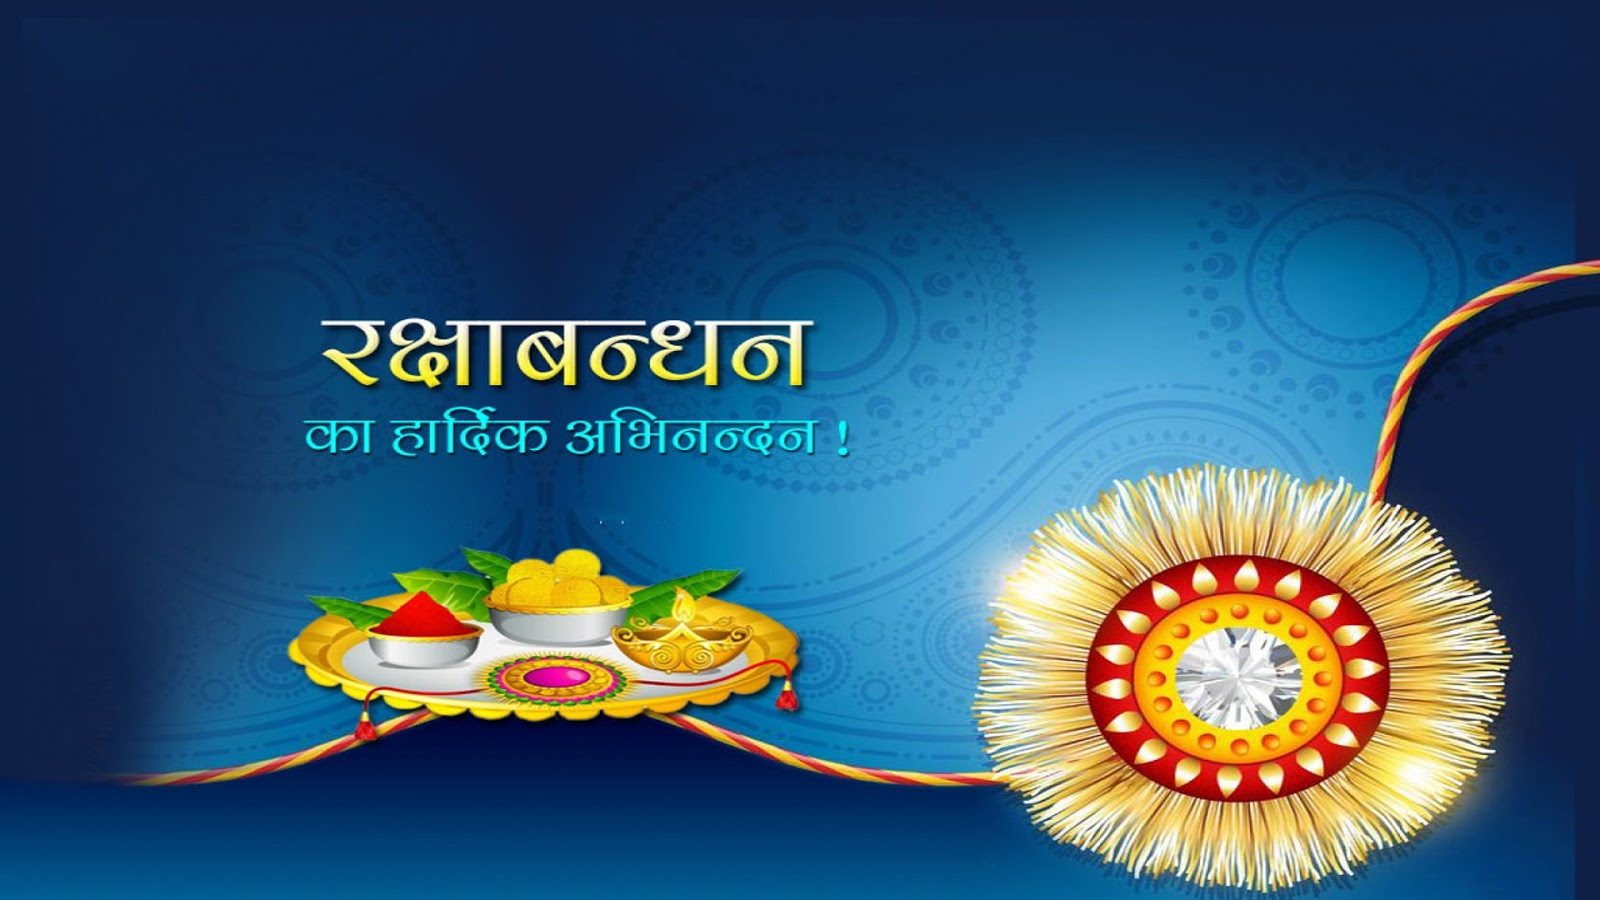 happy raksha bandhan rakhi wishes images quotes sms raksha bandhan 1080p hd